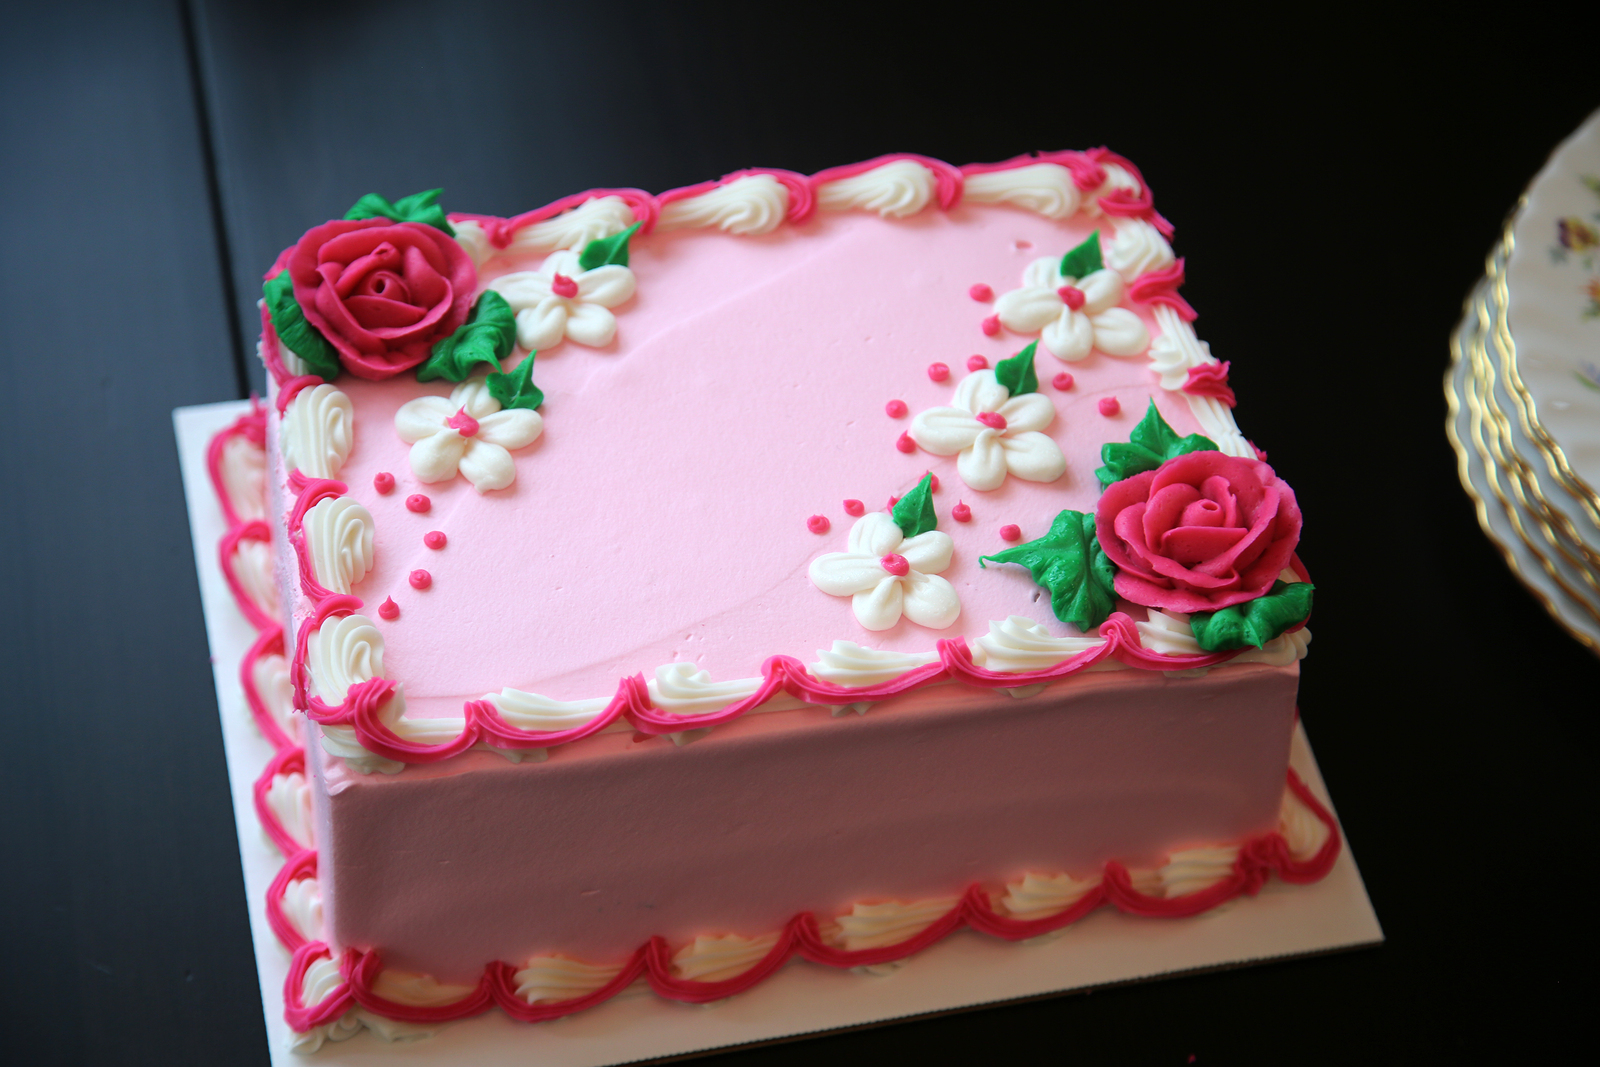 Birthday Cake. Pink Ice Cream Birthday Cake. Blank with room for